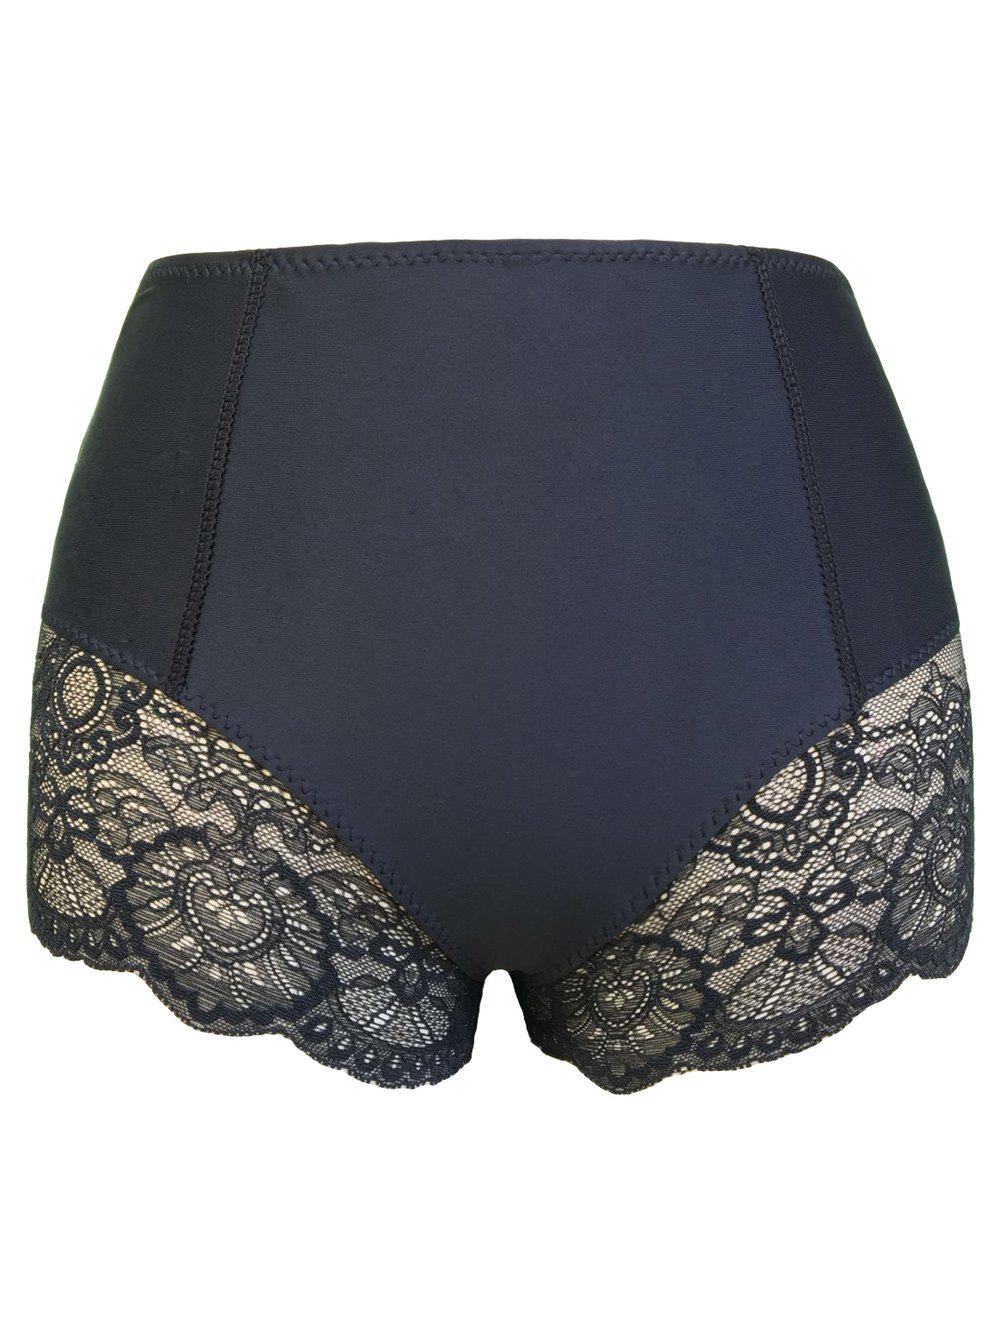 Lace Panel Lifted Boyshort Panties - BLACK L